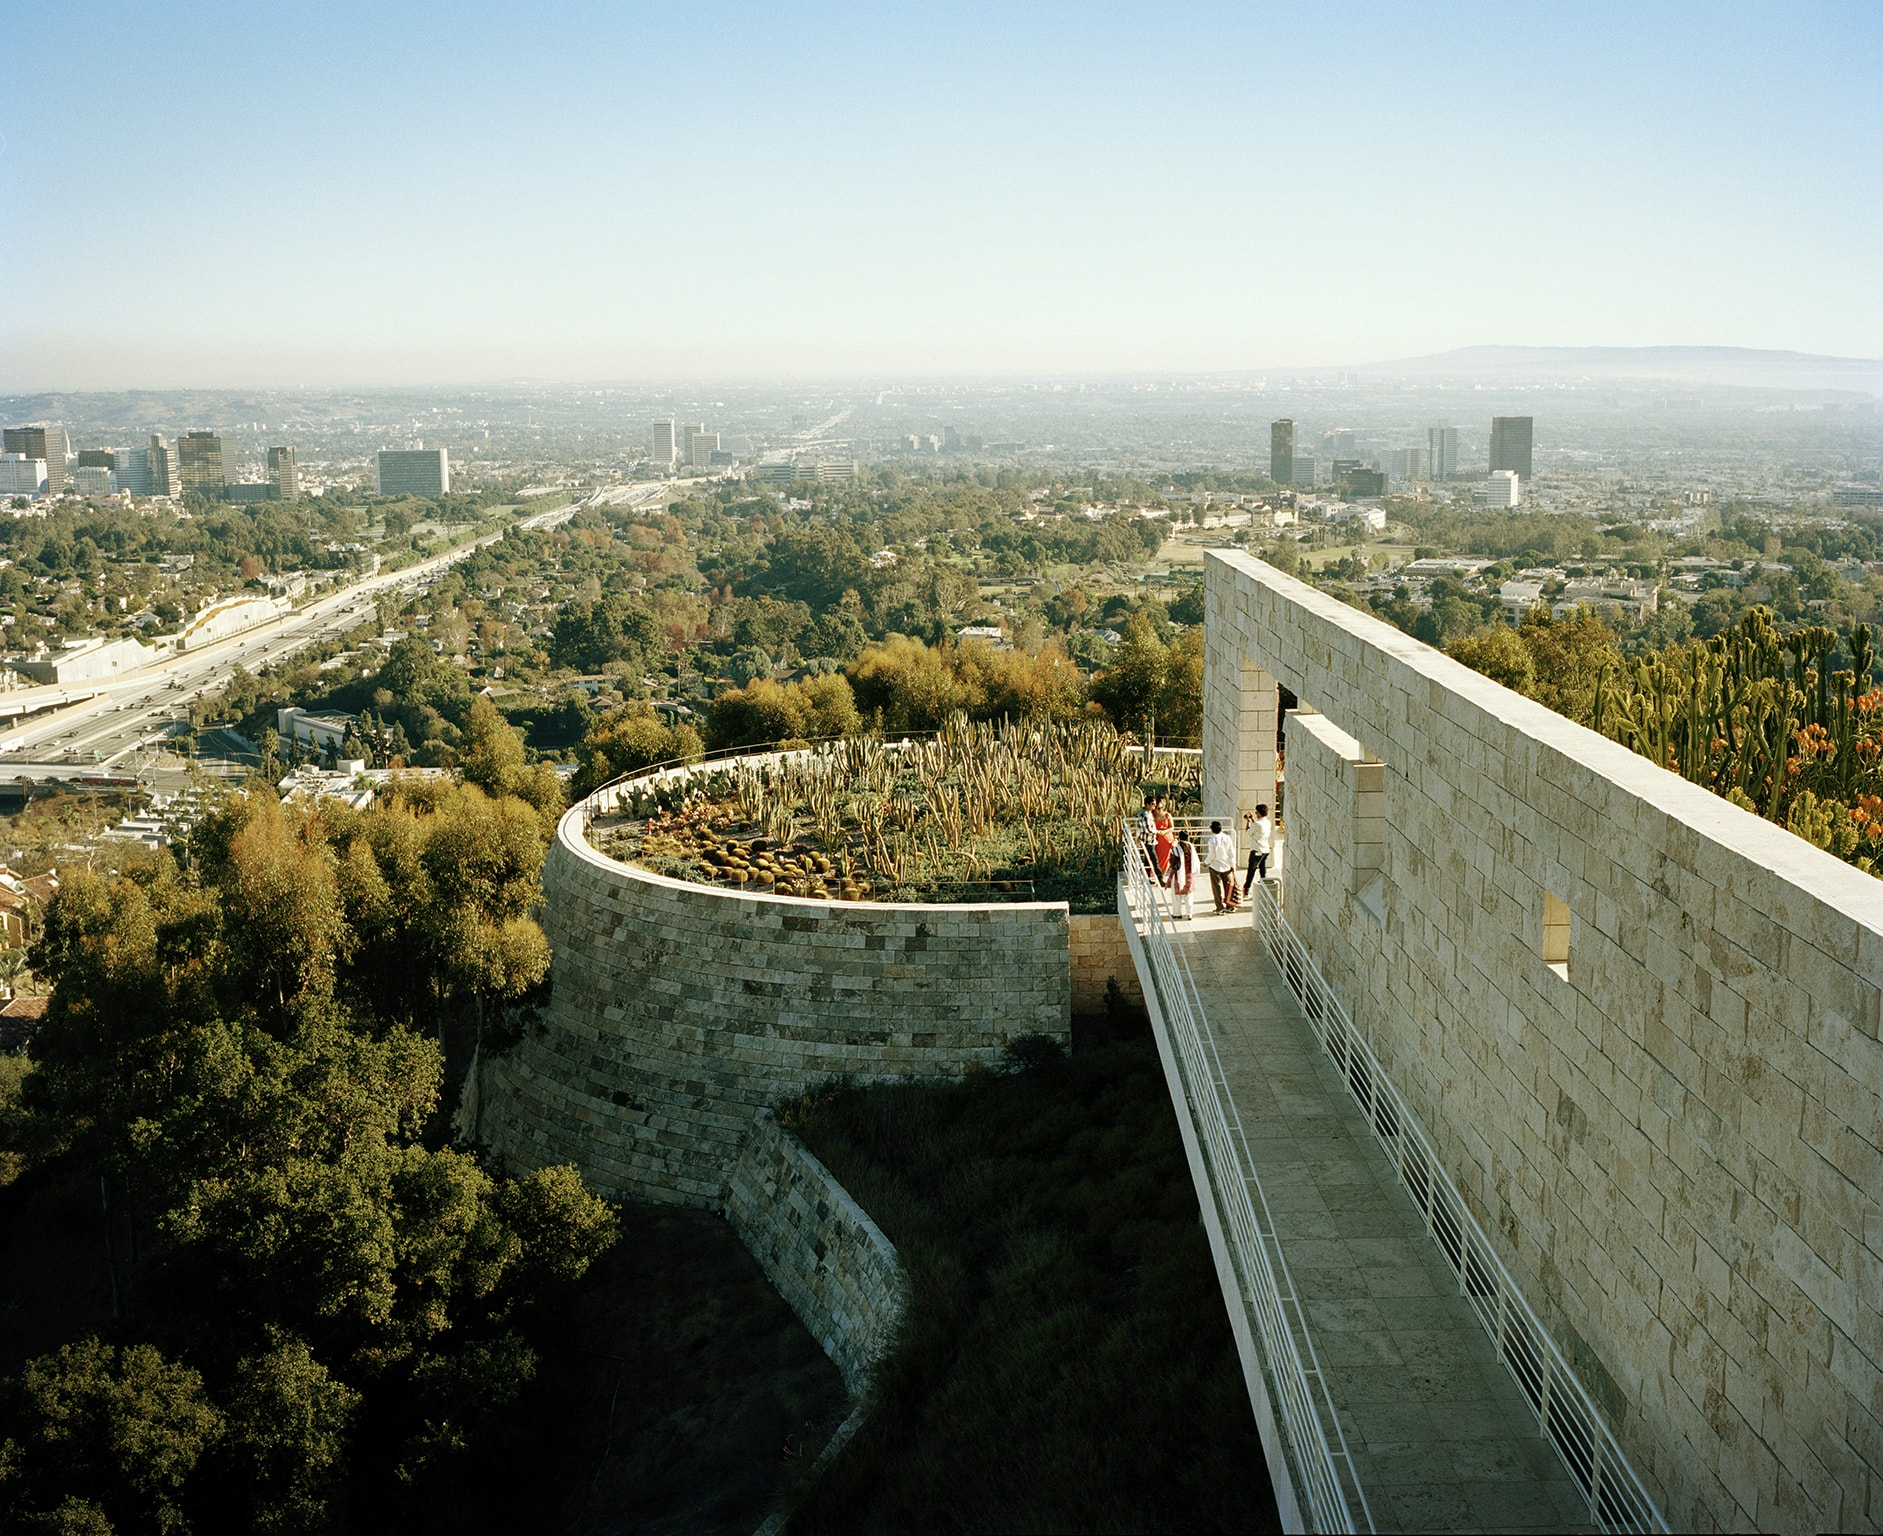 The Getty – Los Angeles, California